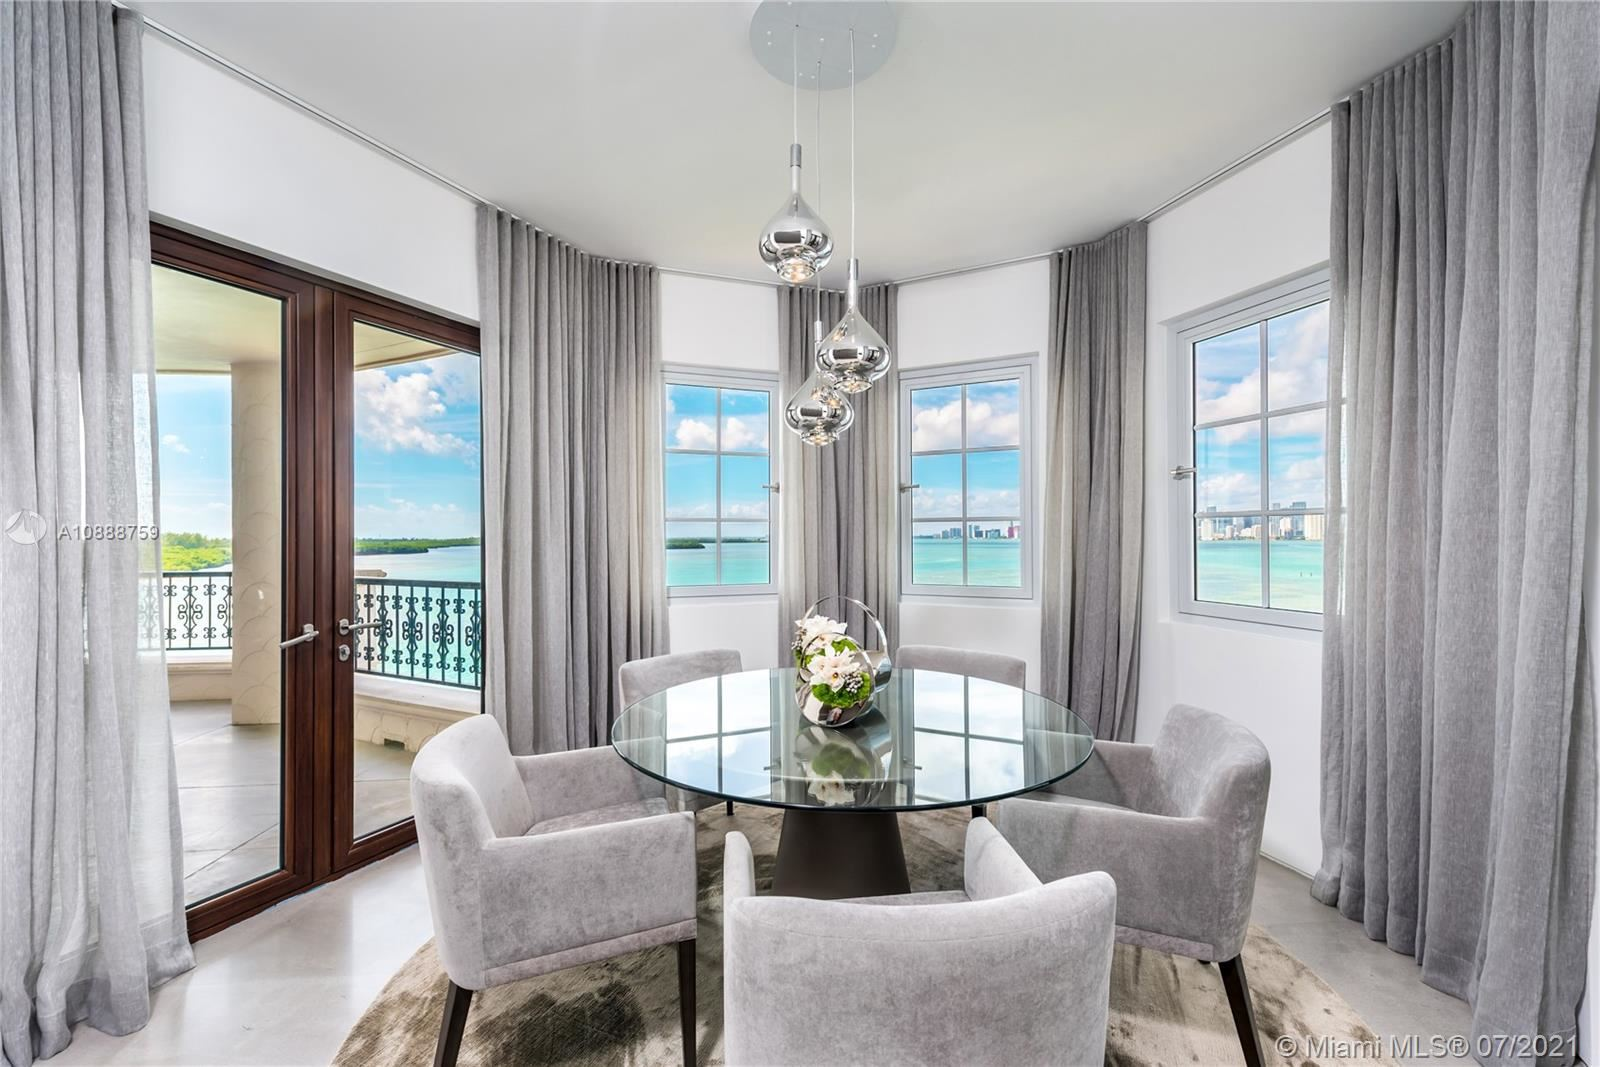 Photo 13 of Listing MLS a10888759 in 5282 Fisher Island Dr #5282 Miami FL 33109